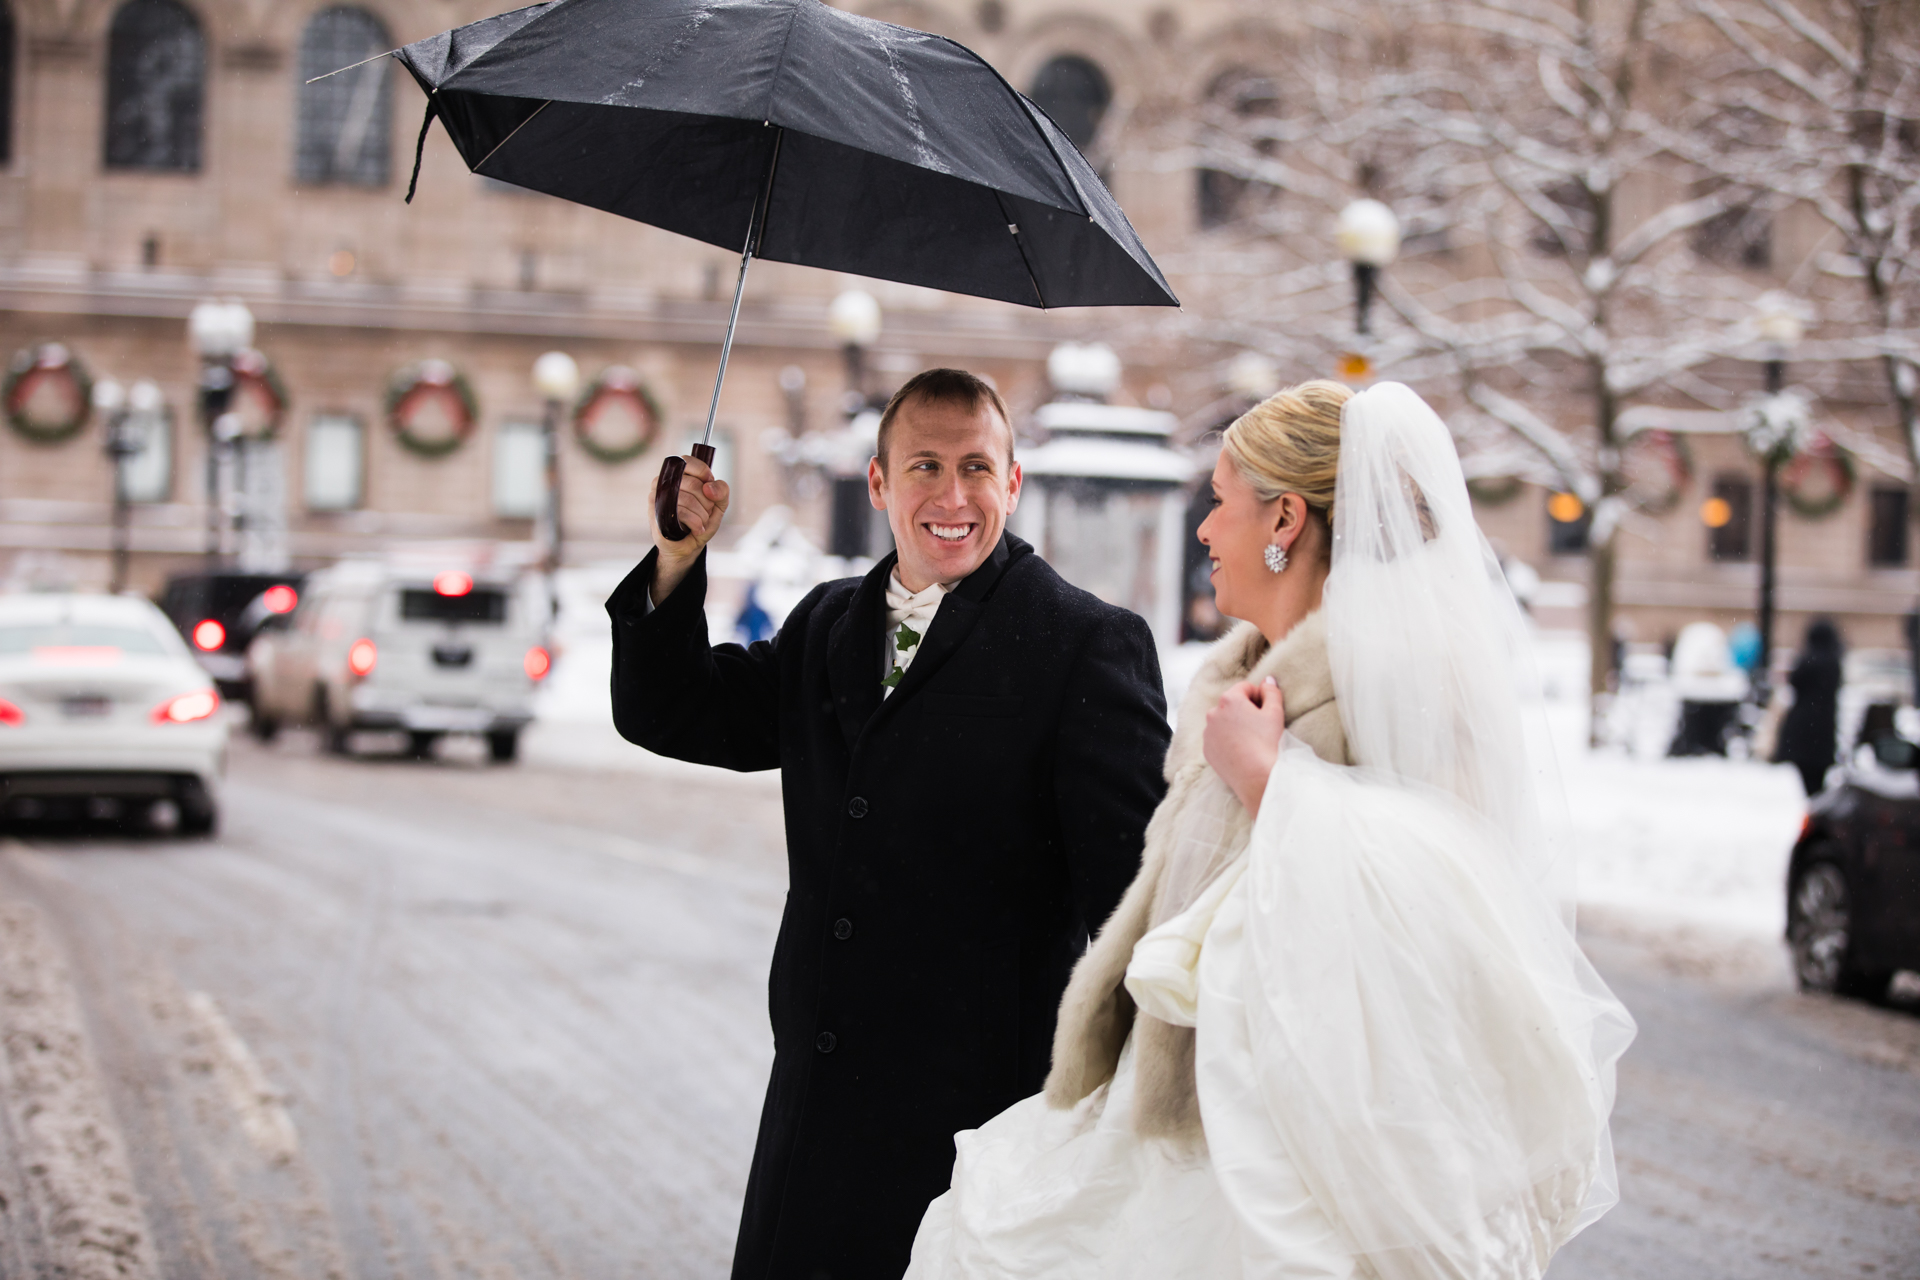 Boston-Fairmont-Copley-Plaza-Wedding-AmandaMorgan-Photography-47.jpg